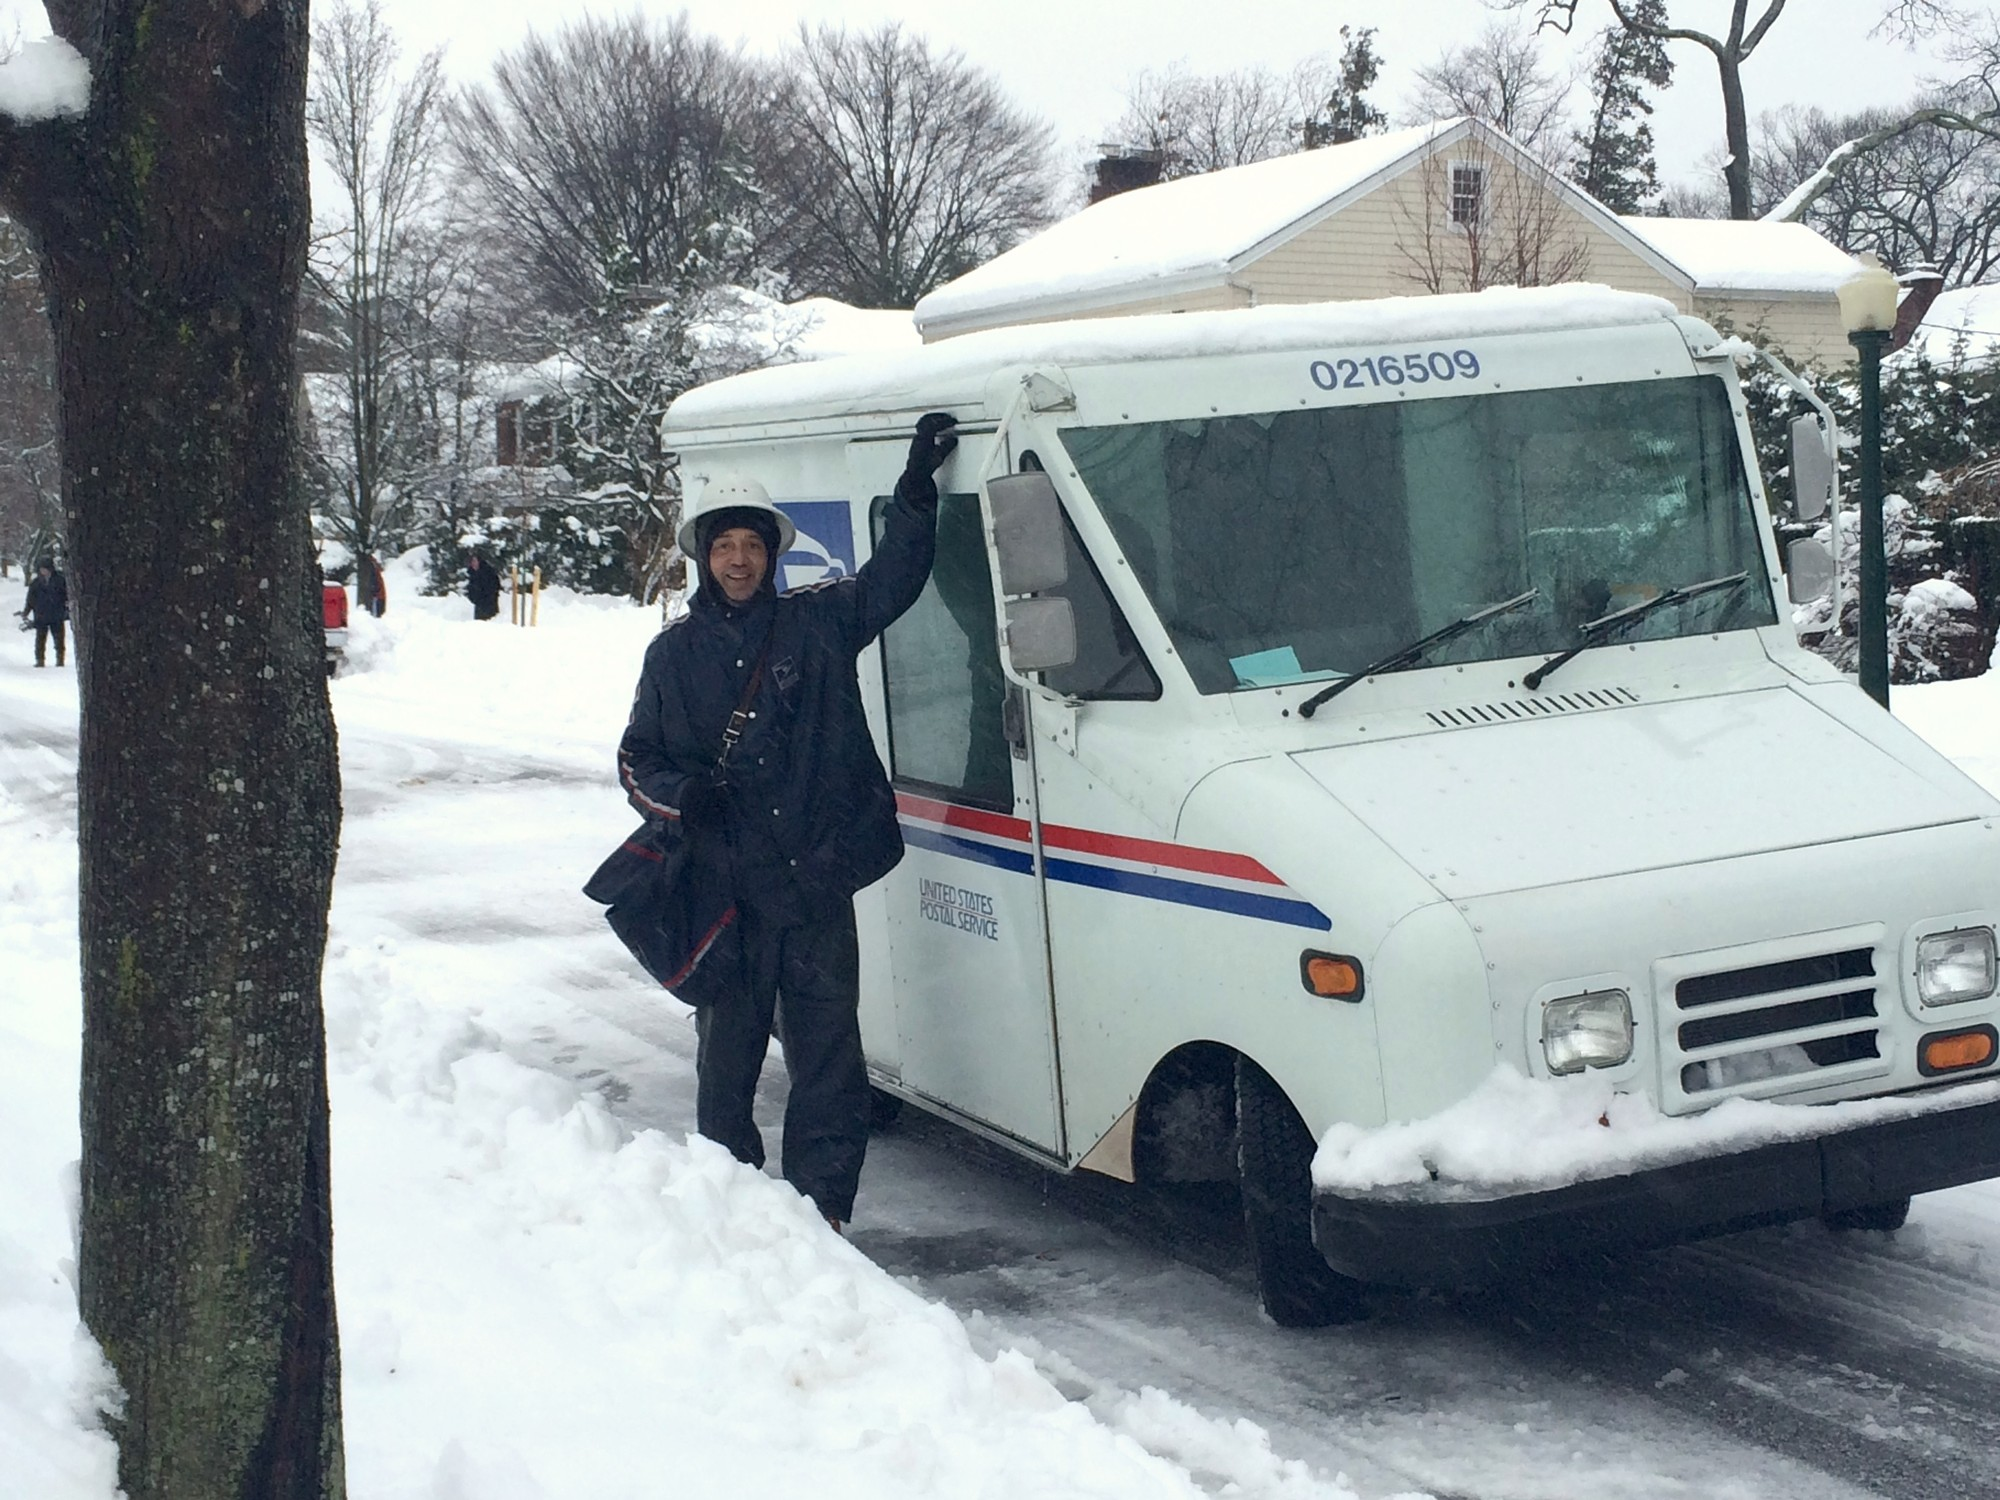 Neither snow nor rain nor heat nor gloom of night stays these couriers from the swift completion of their appointed rounds. This mailman in Rockville Centre braved the wintery weather to complete his rounds